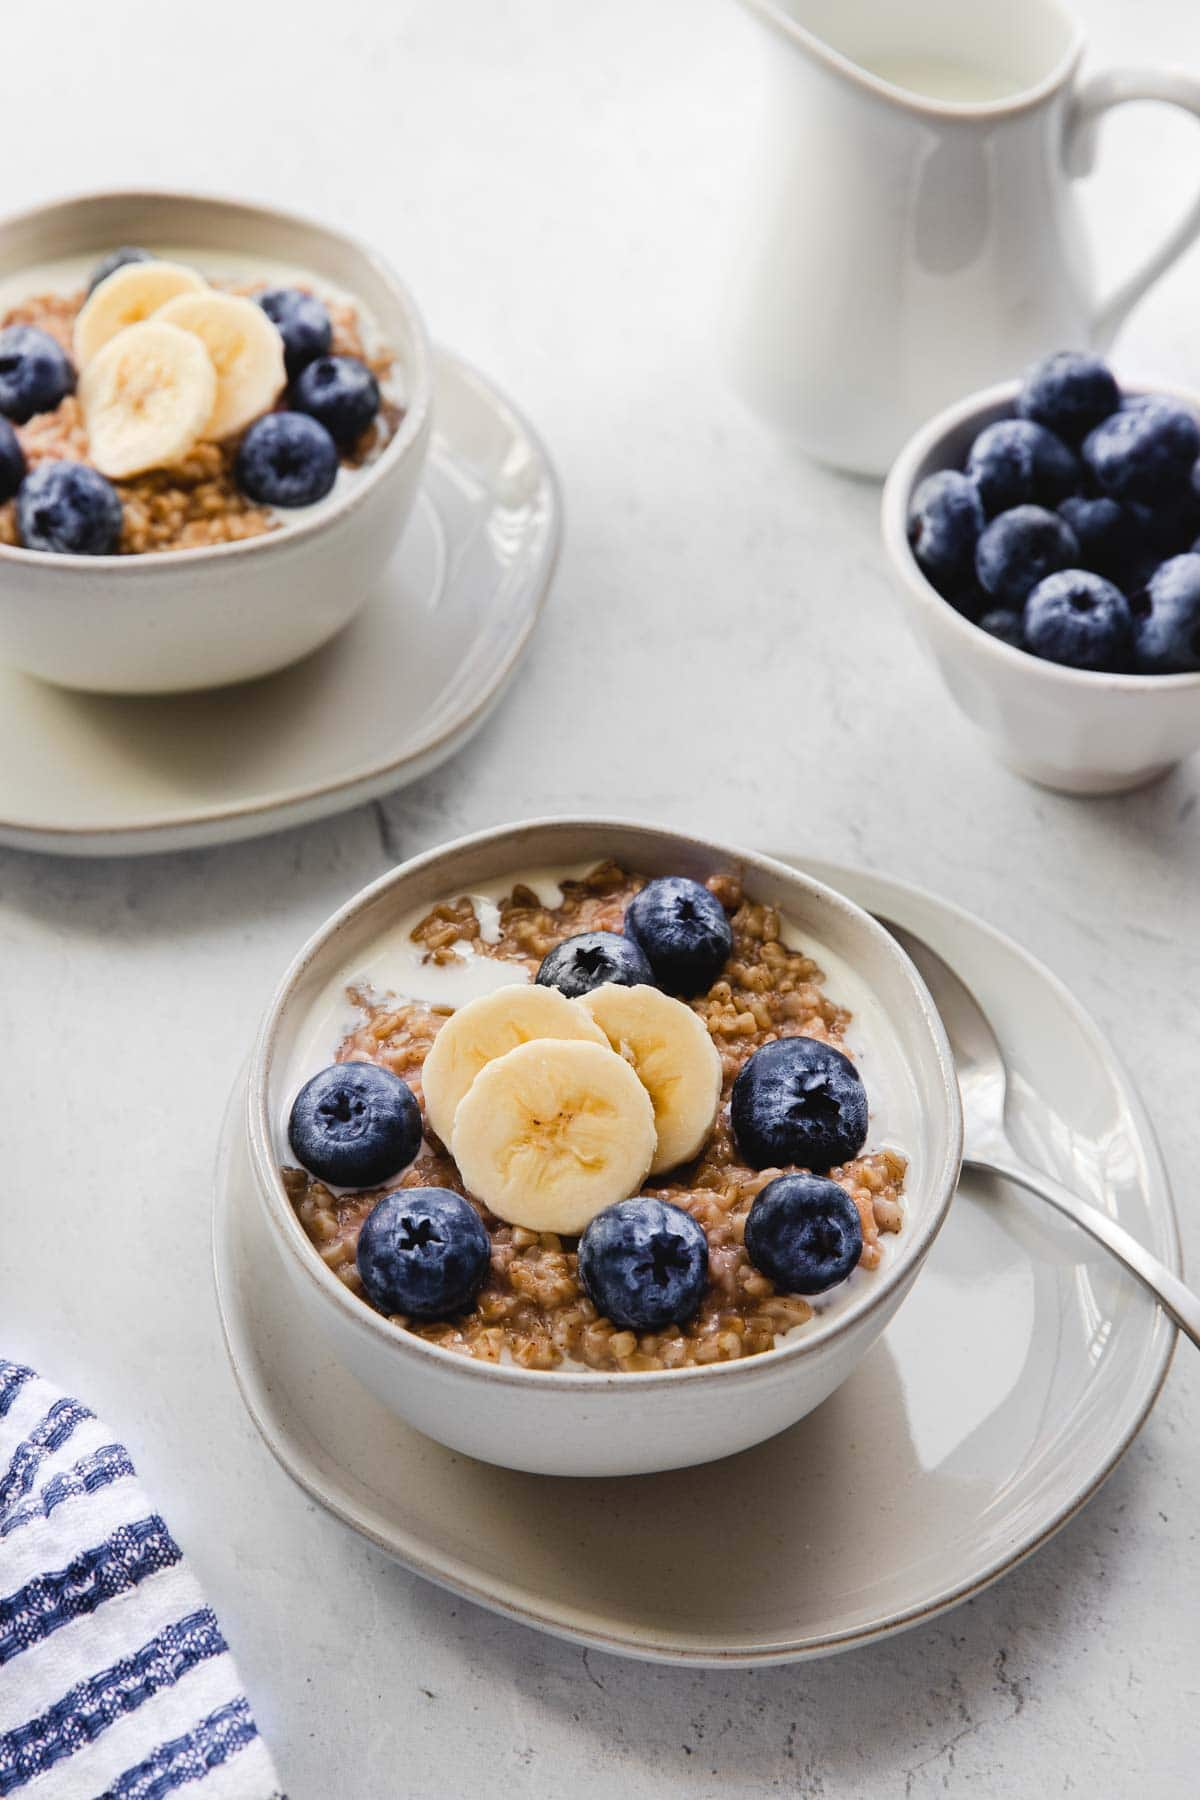 Steel cut oatmeal in a bowl with bananas and blueberries.